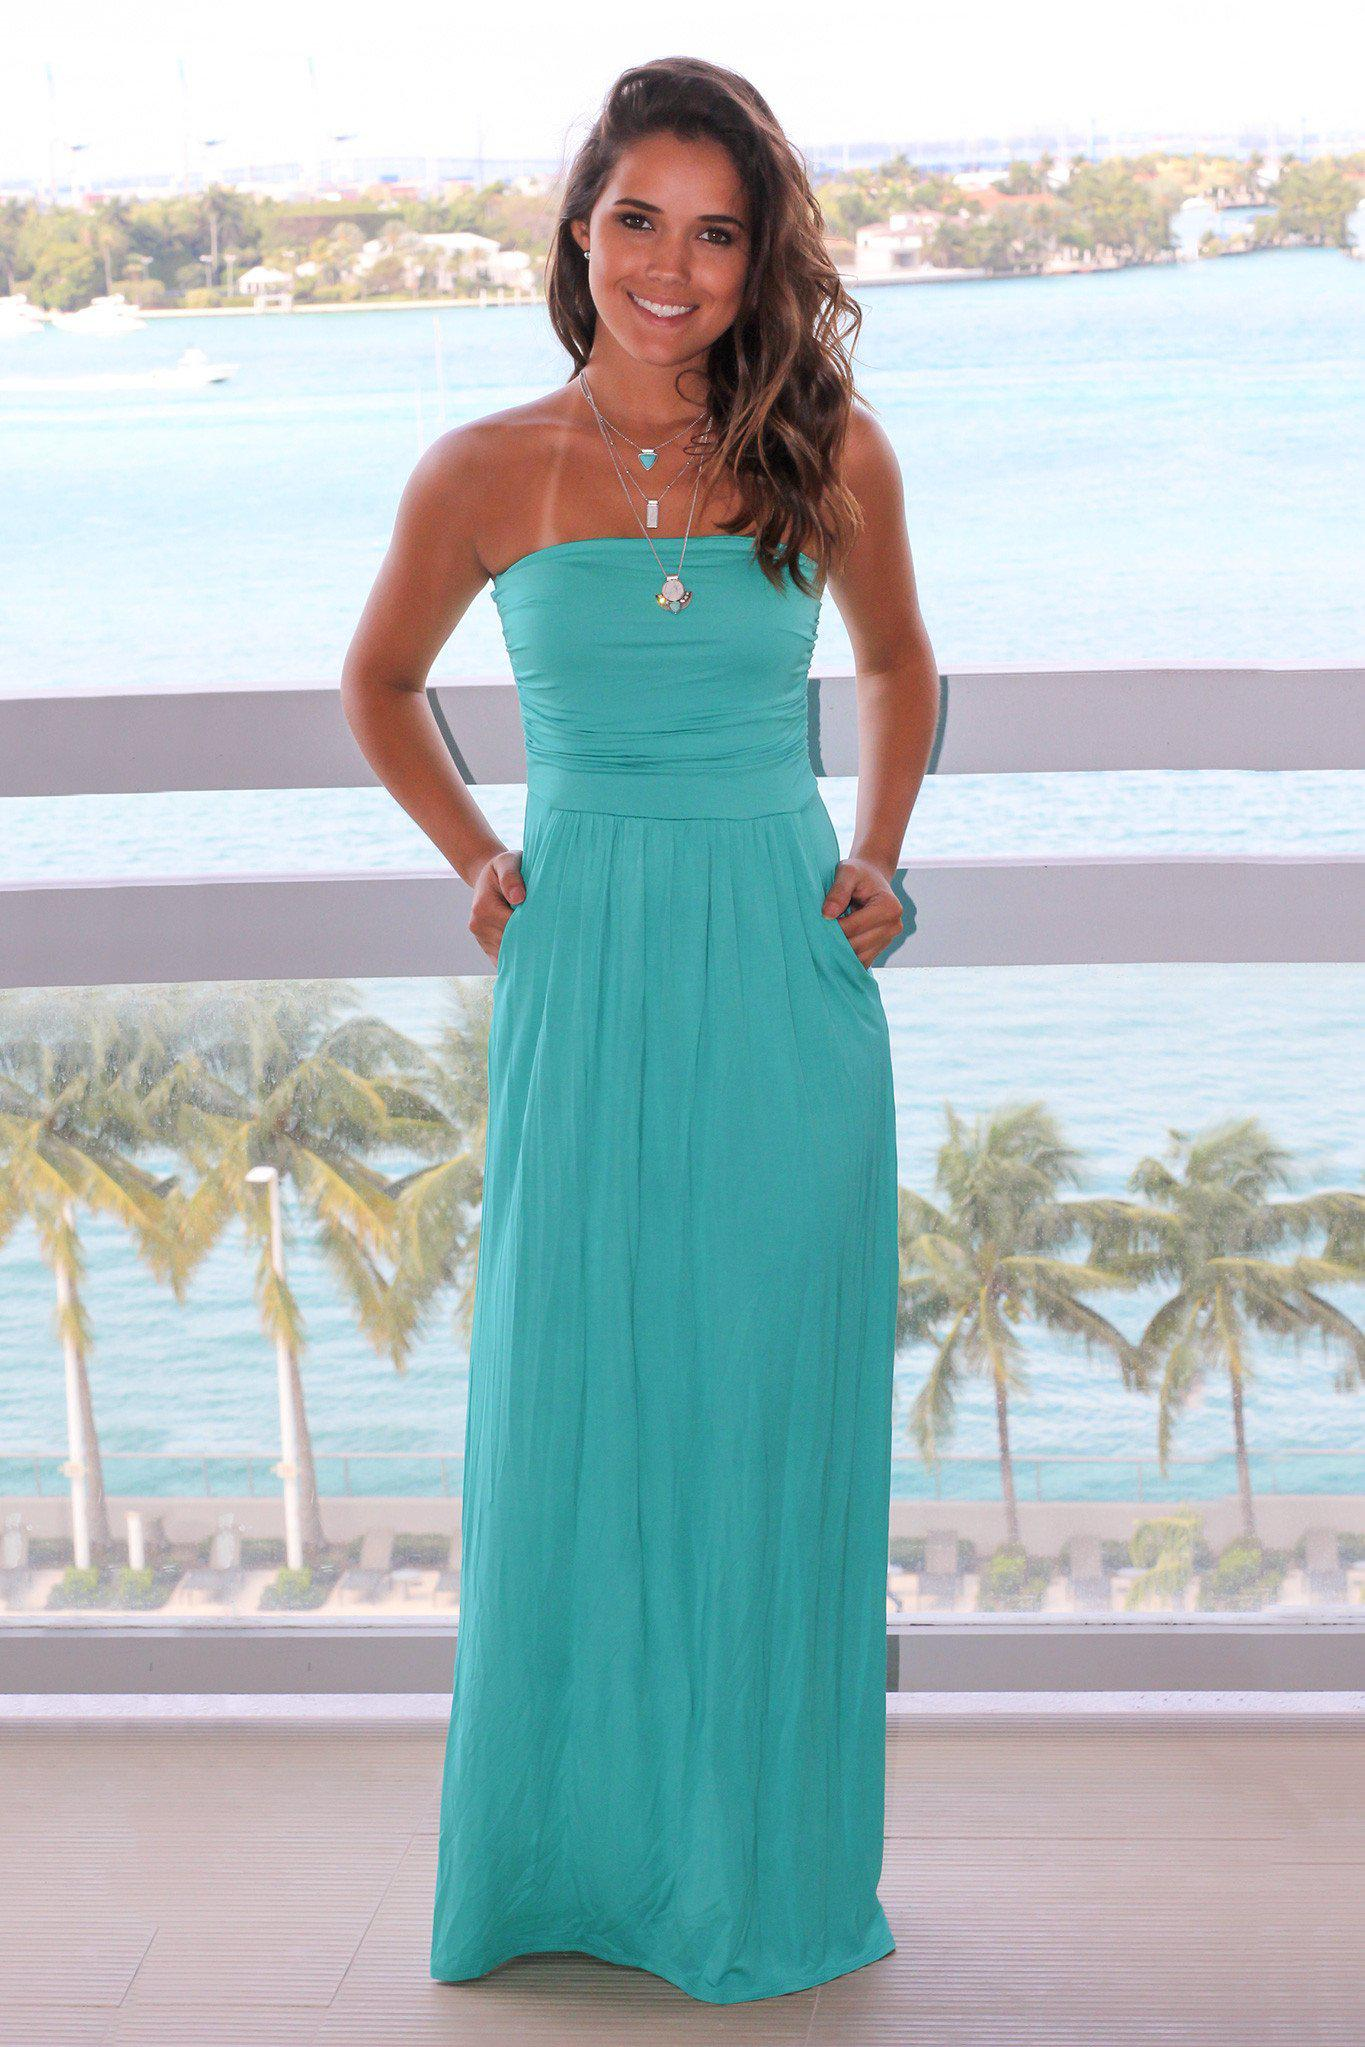 Strapless Turquoise Maxi Dress with Pockets | Maxi Dresses – Saved ...